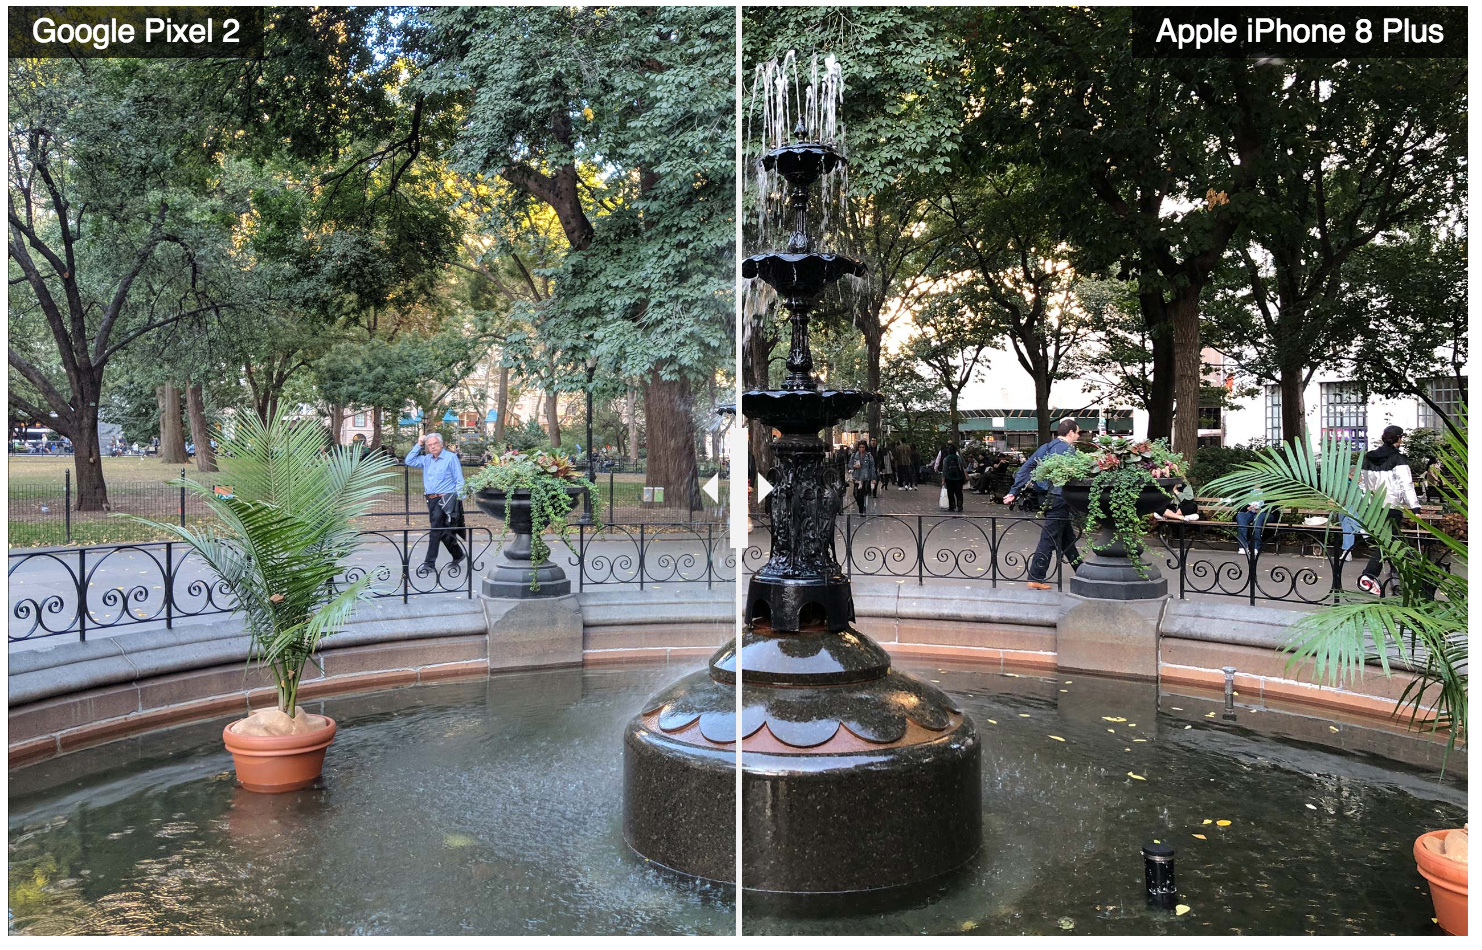 Comparison of images taken with iPhone 8 Plus and Pixel 2